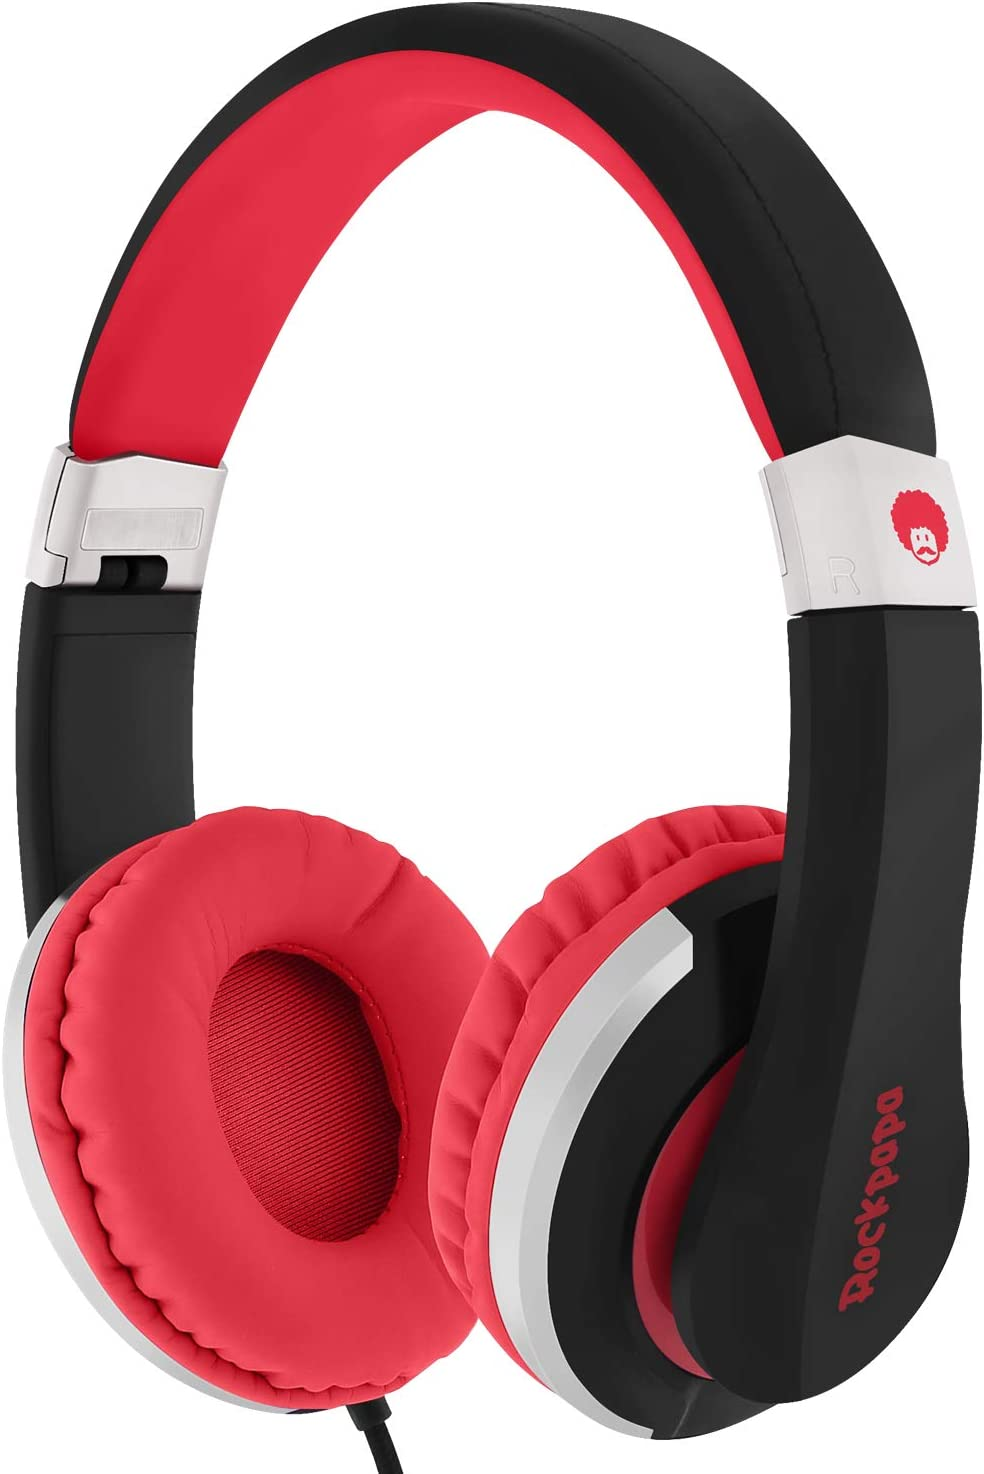 RockPapa I22 Foldable Adjustable On Ear Headphones with Microphone for Kids/Adults iPhone iPad iPod Tablets MP3/4 DVD Computer Black/Red